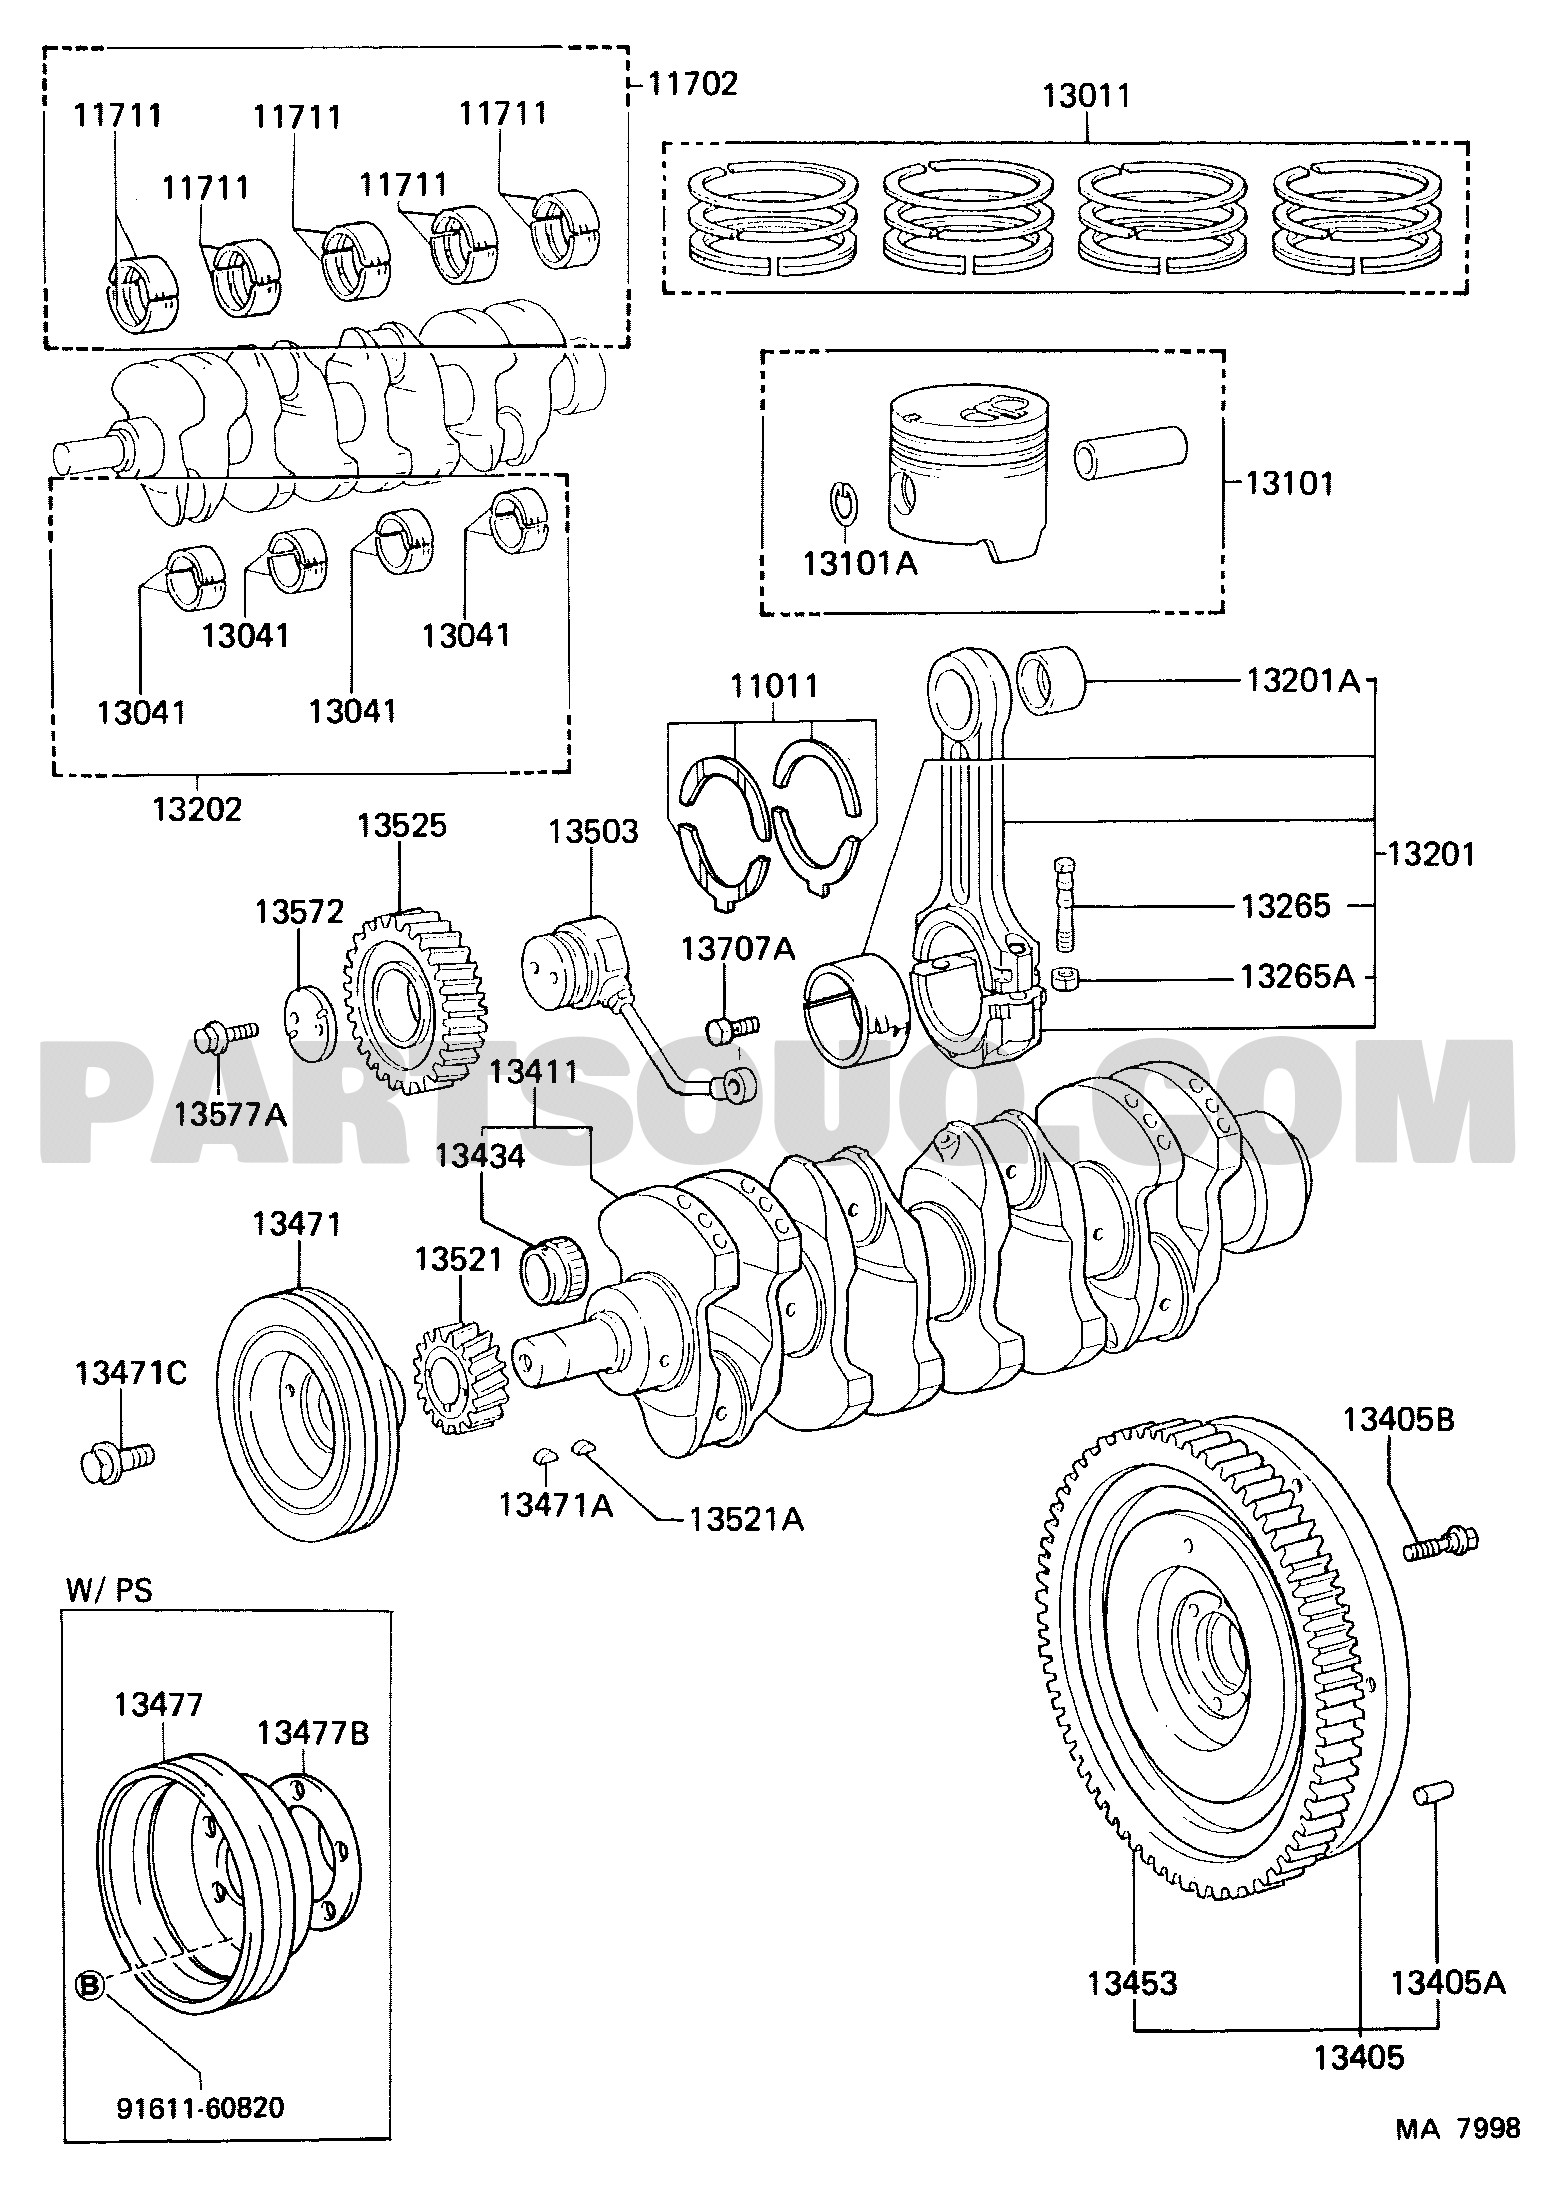 Car Engine Diagram Piston Subaru Oem 04 14 Impreza Engine